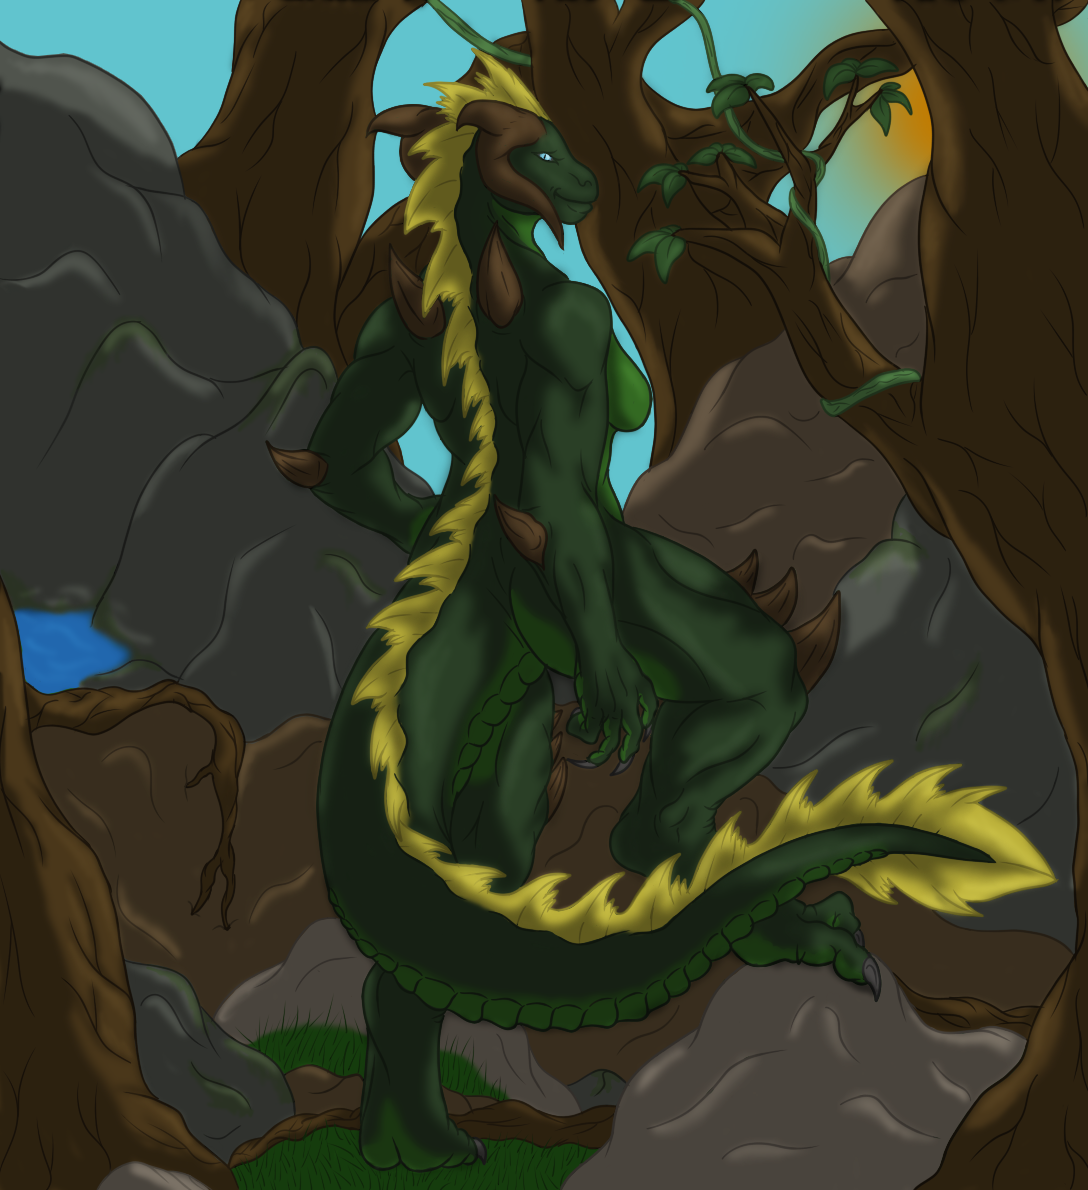 Anthro dragoness nude scene